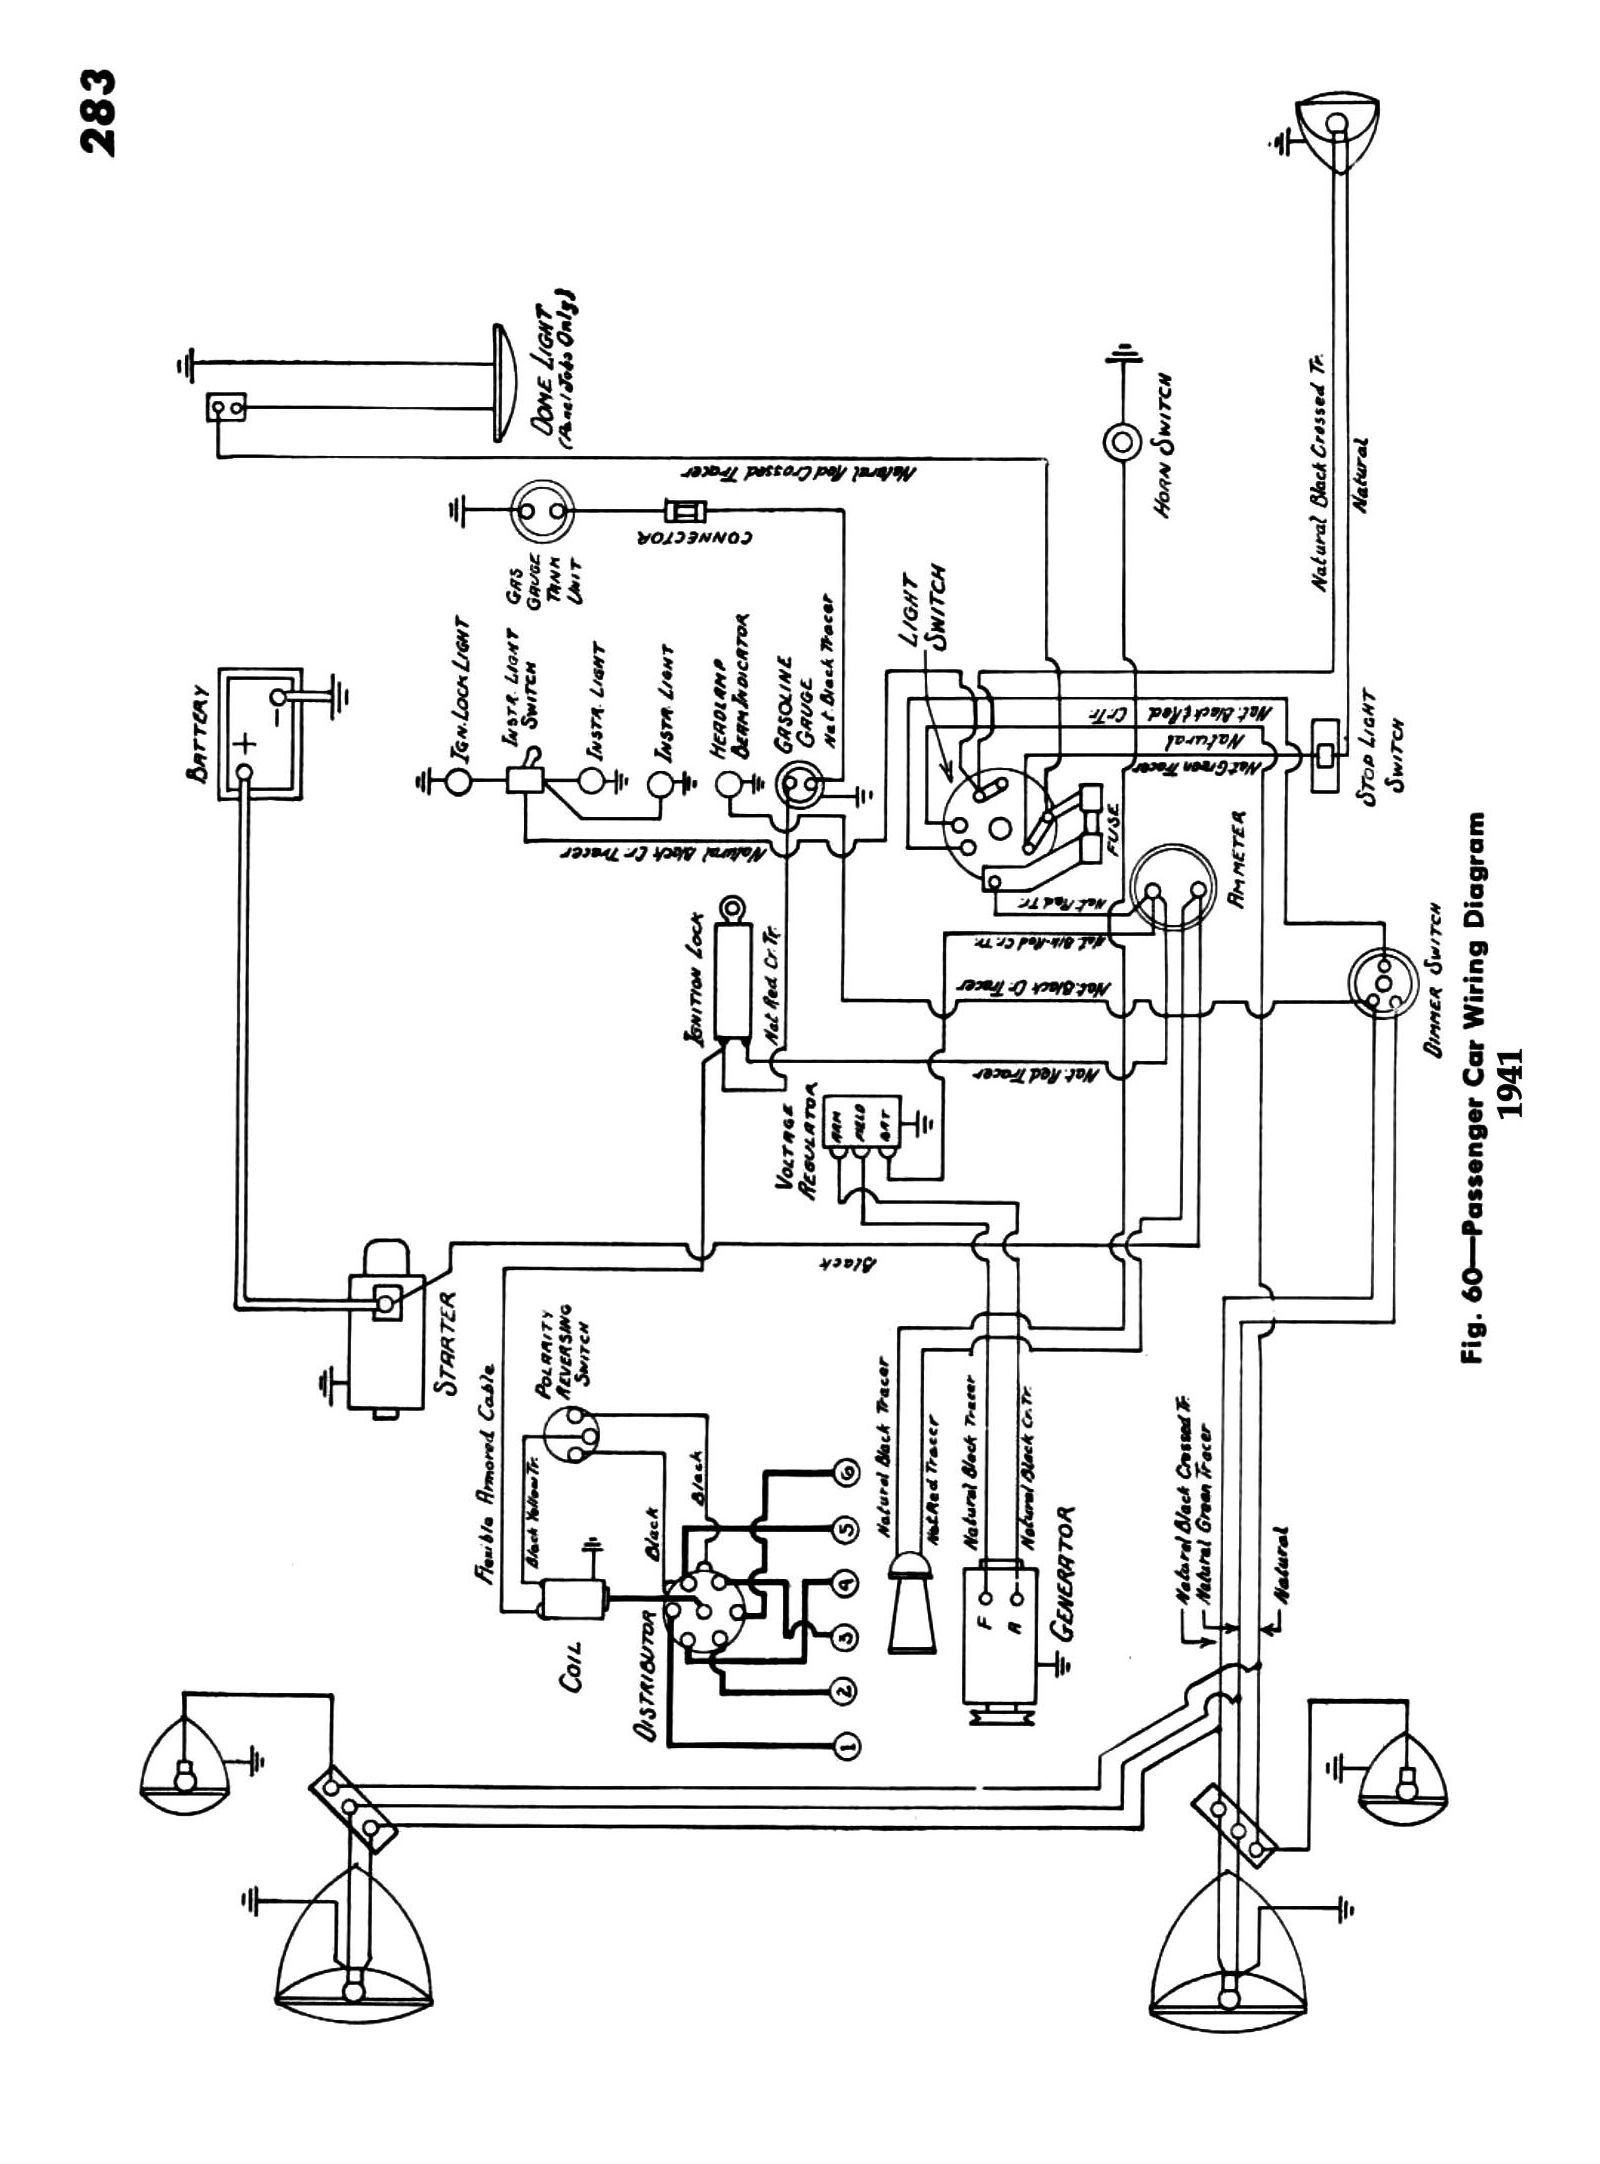 car ignition circuit diagram unique chevy ignition coil